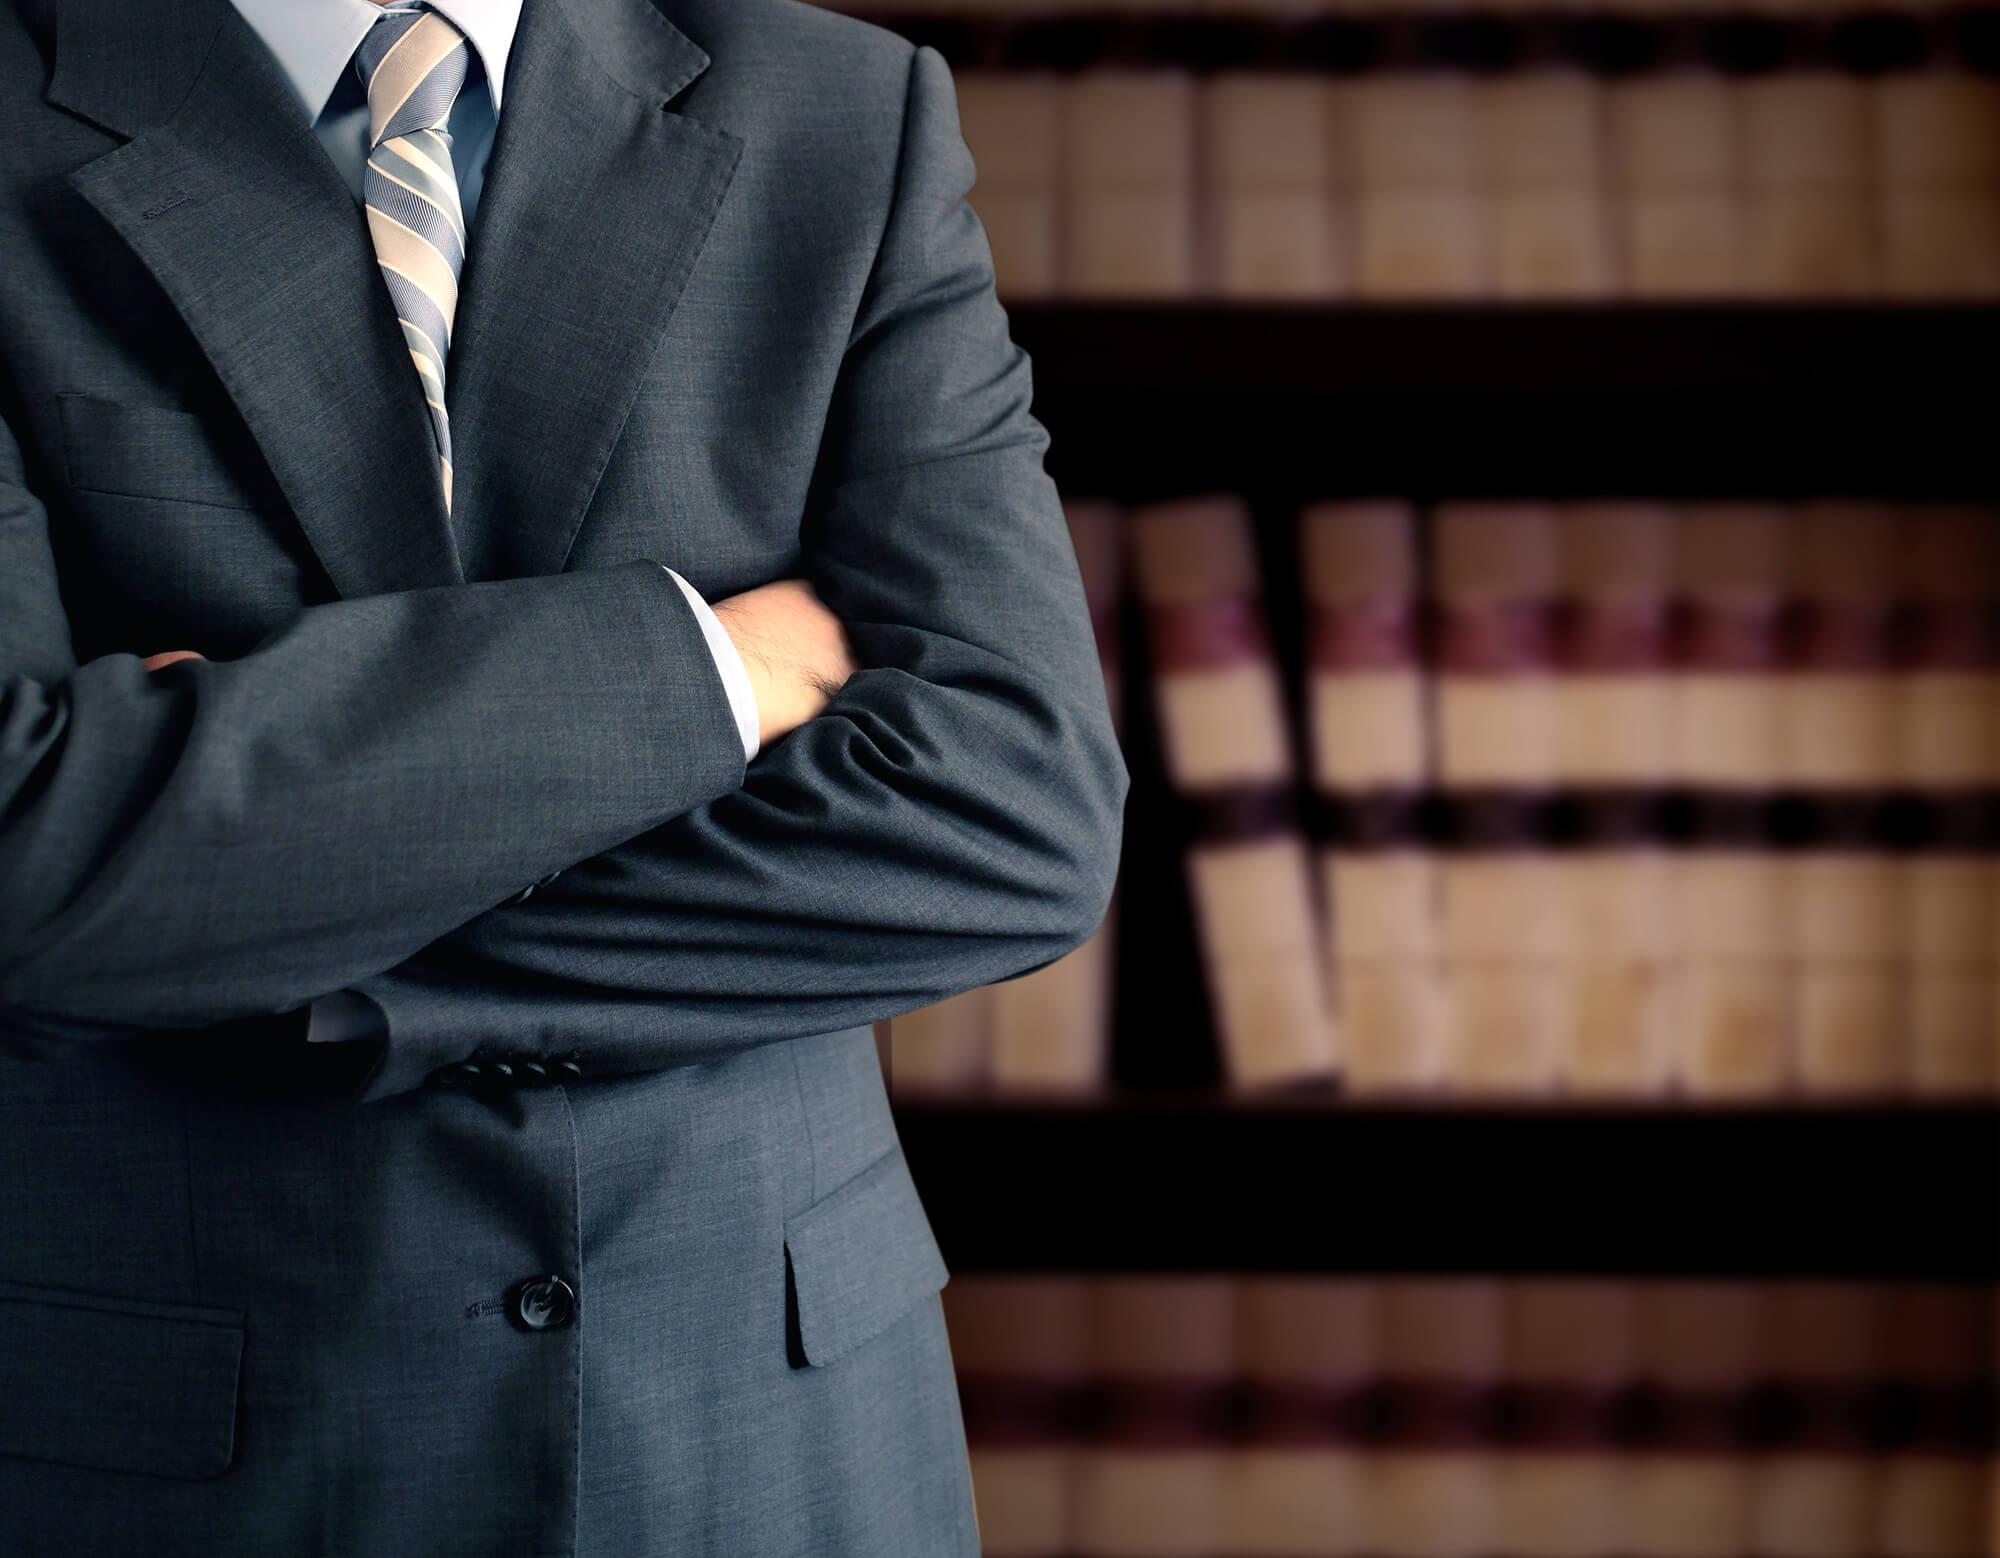 domestic-violence-lawyer-west-palm-beach-attorney